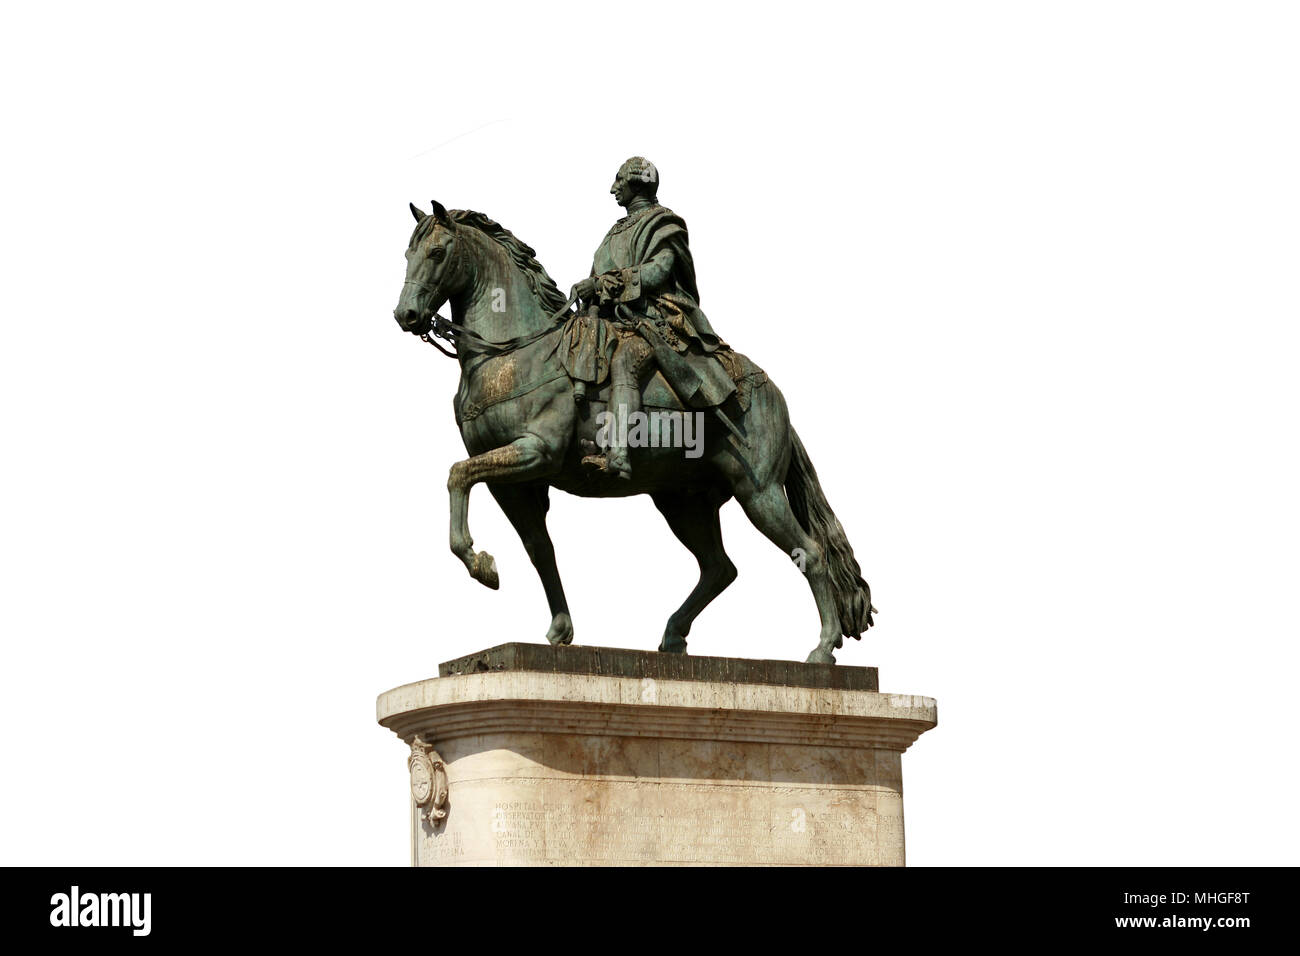 Carlos III statue. Madrid. Spain - Stock Image